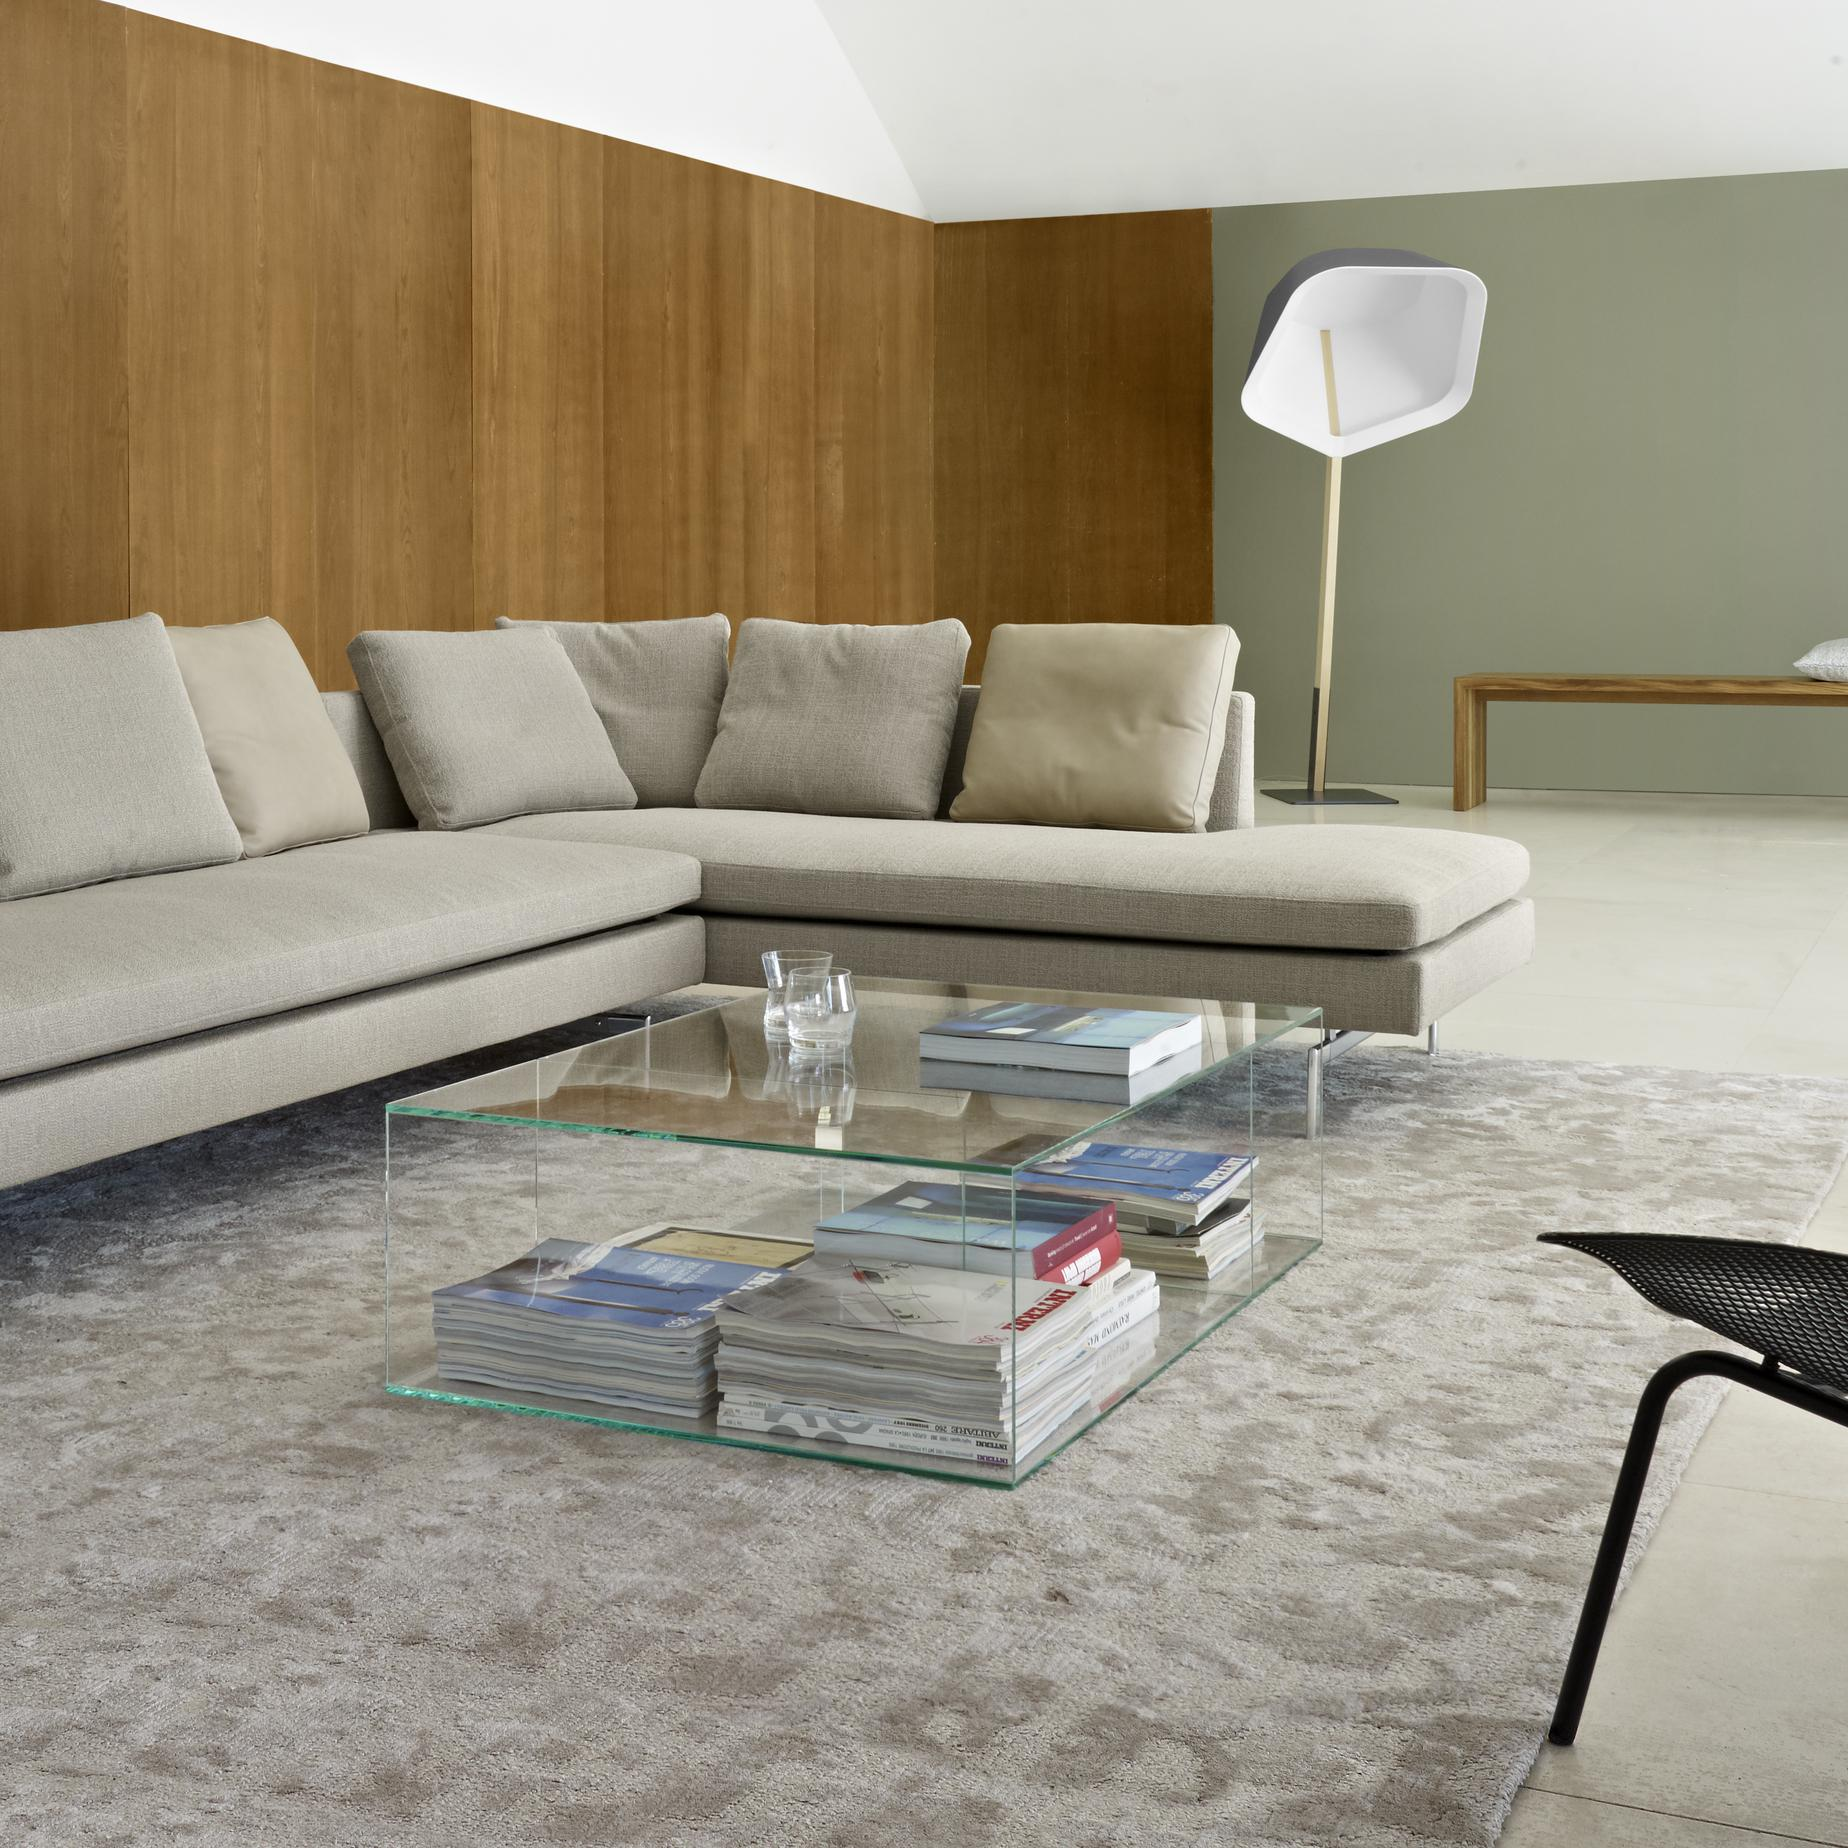 saldo occasional tables from designer nick rennie ligne roset official site. Black Bedroom Furniture Sets. Home Design Ideas